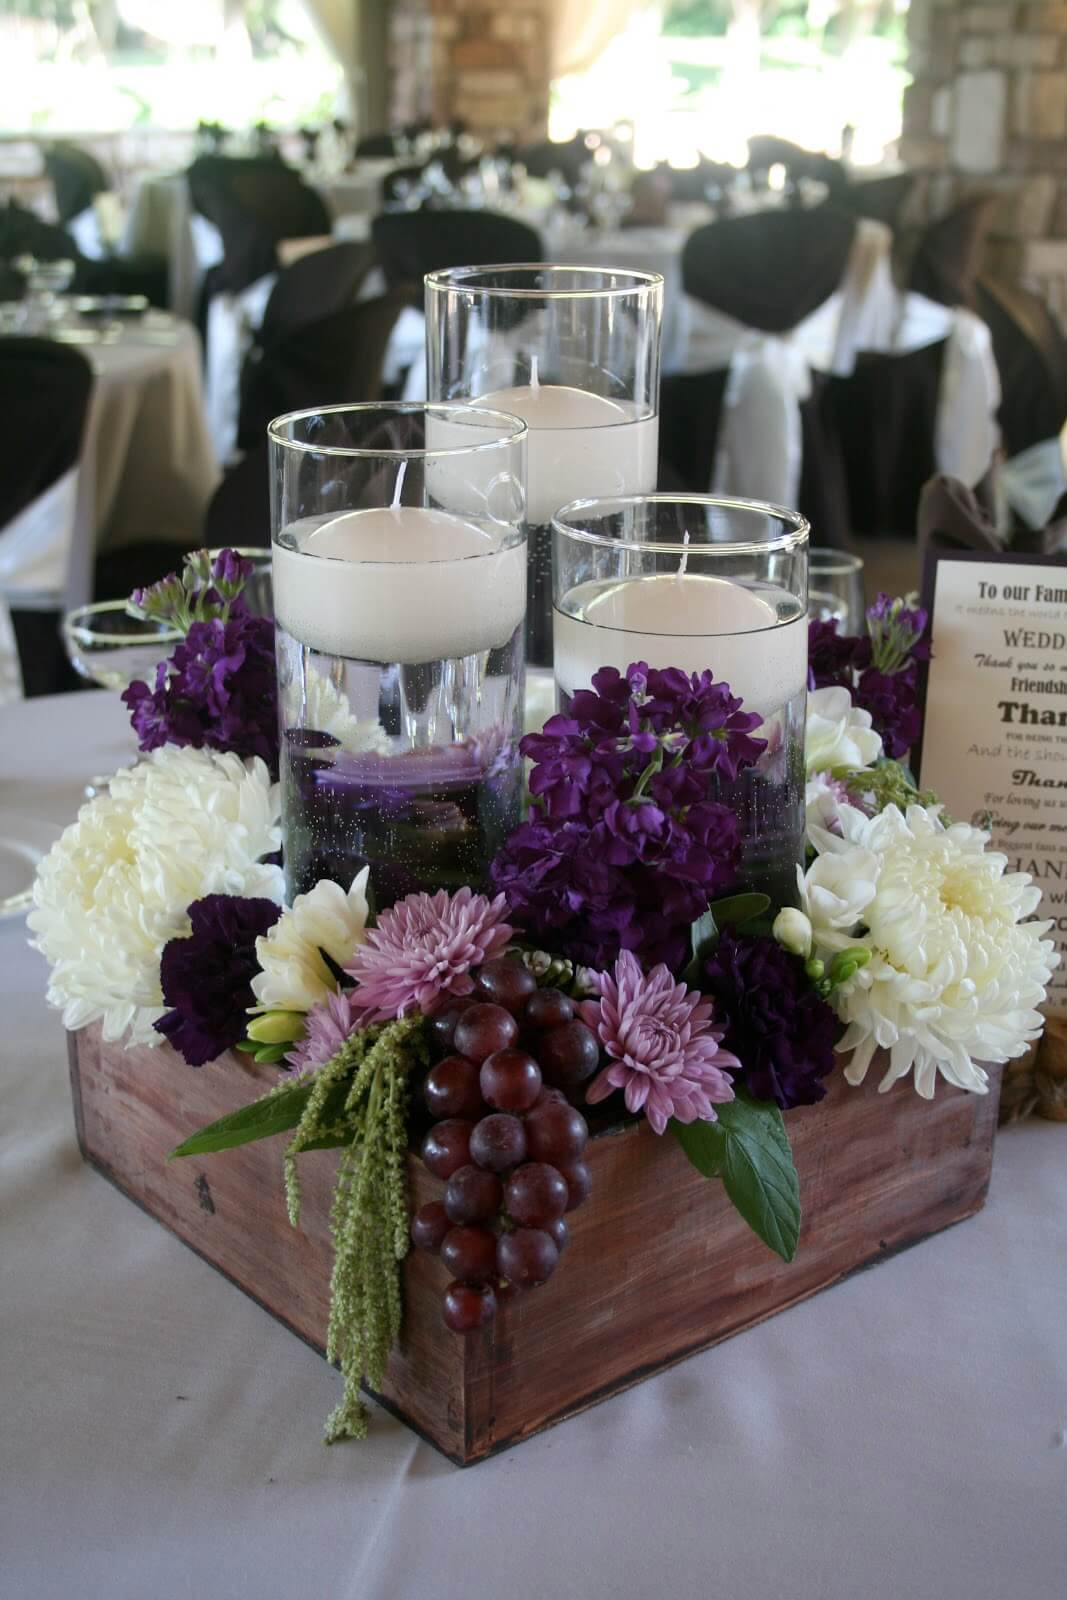 An Elegant Wedding Inspired Table Centerpiece